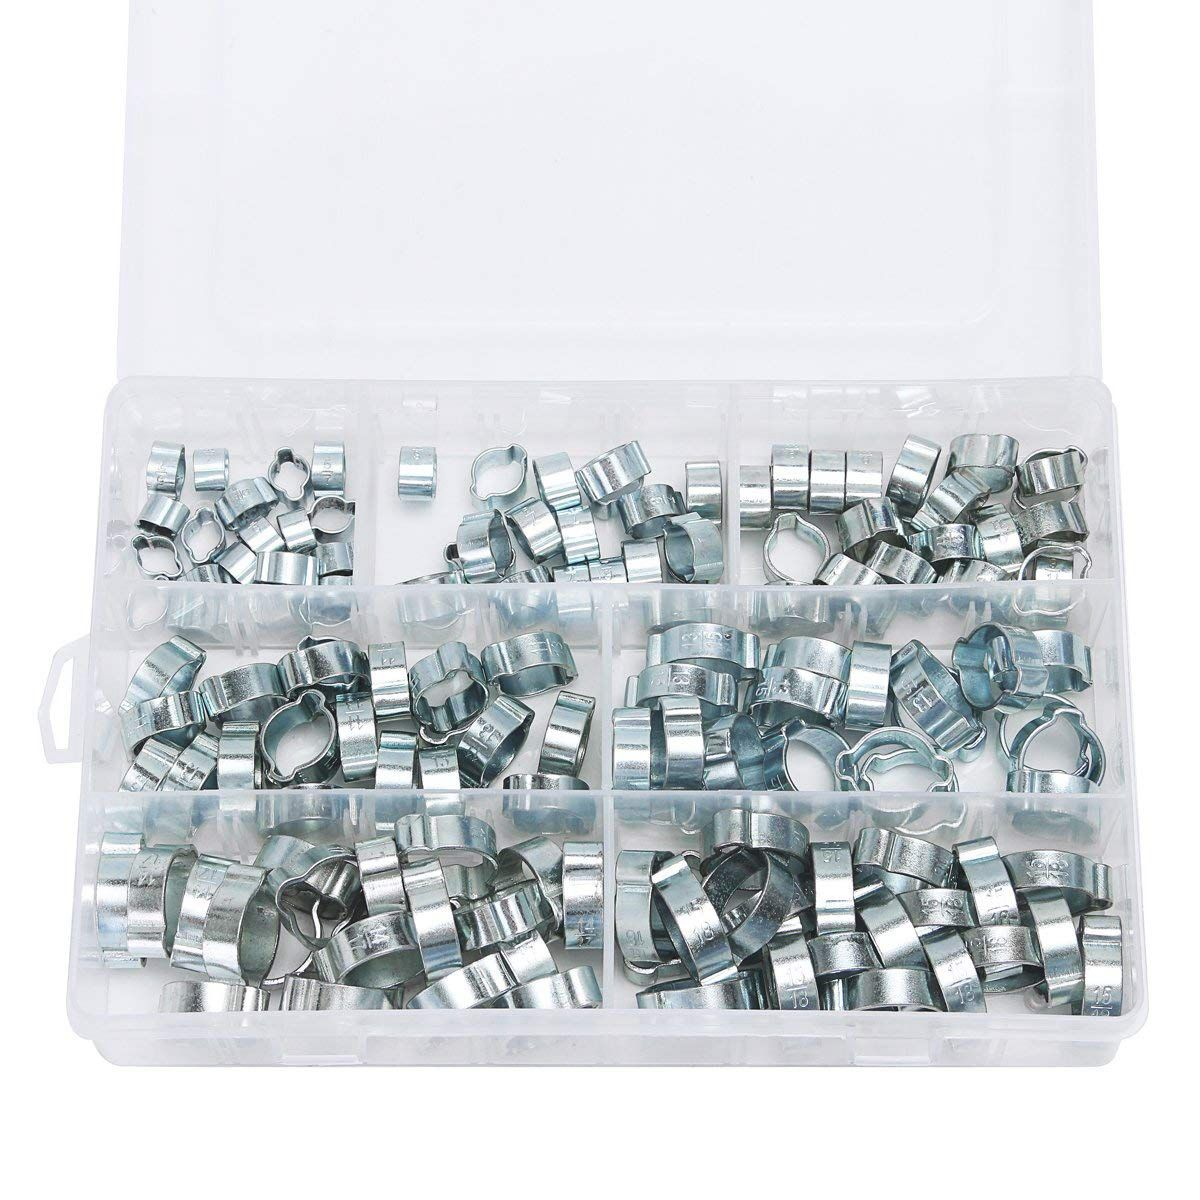 140Pcs Double Ear Steel O Clips Clamps Steel Zinc Plated Assortment For Hydraulic Hose Fuel O type Pipe Ear Tube Clamp